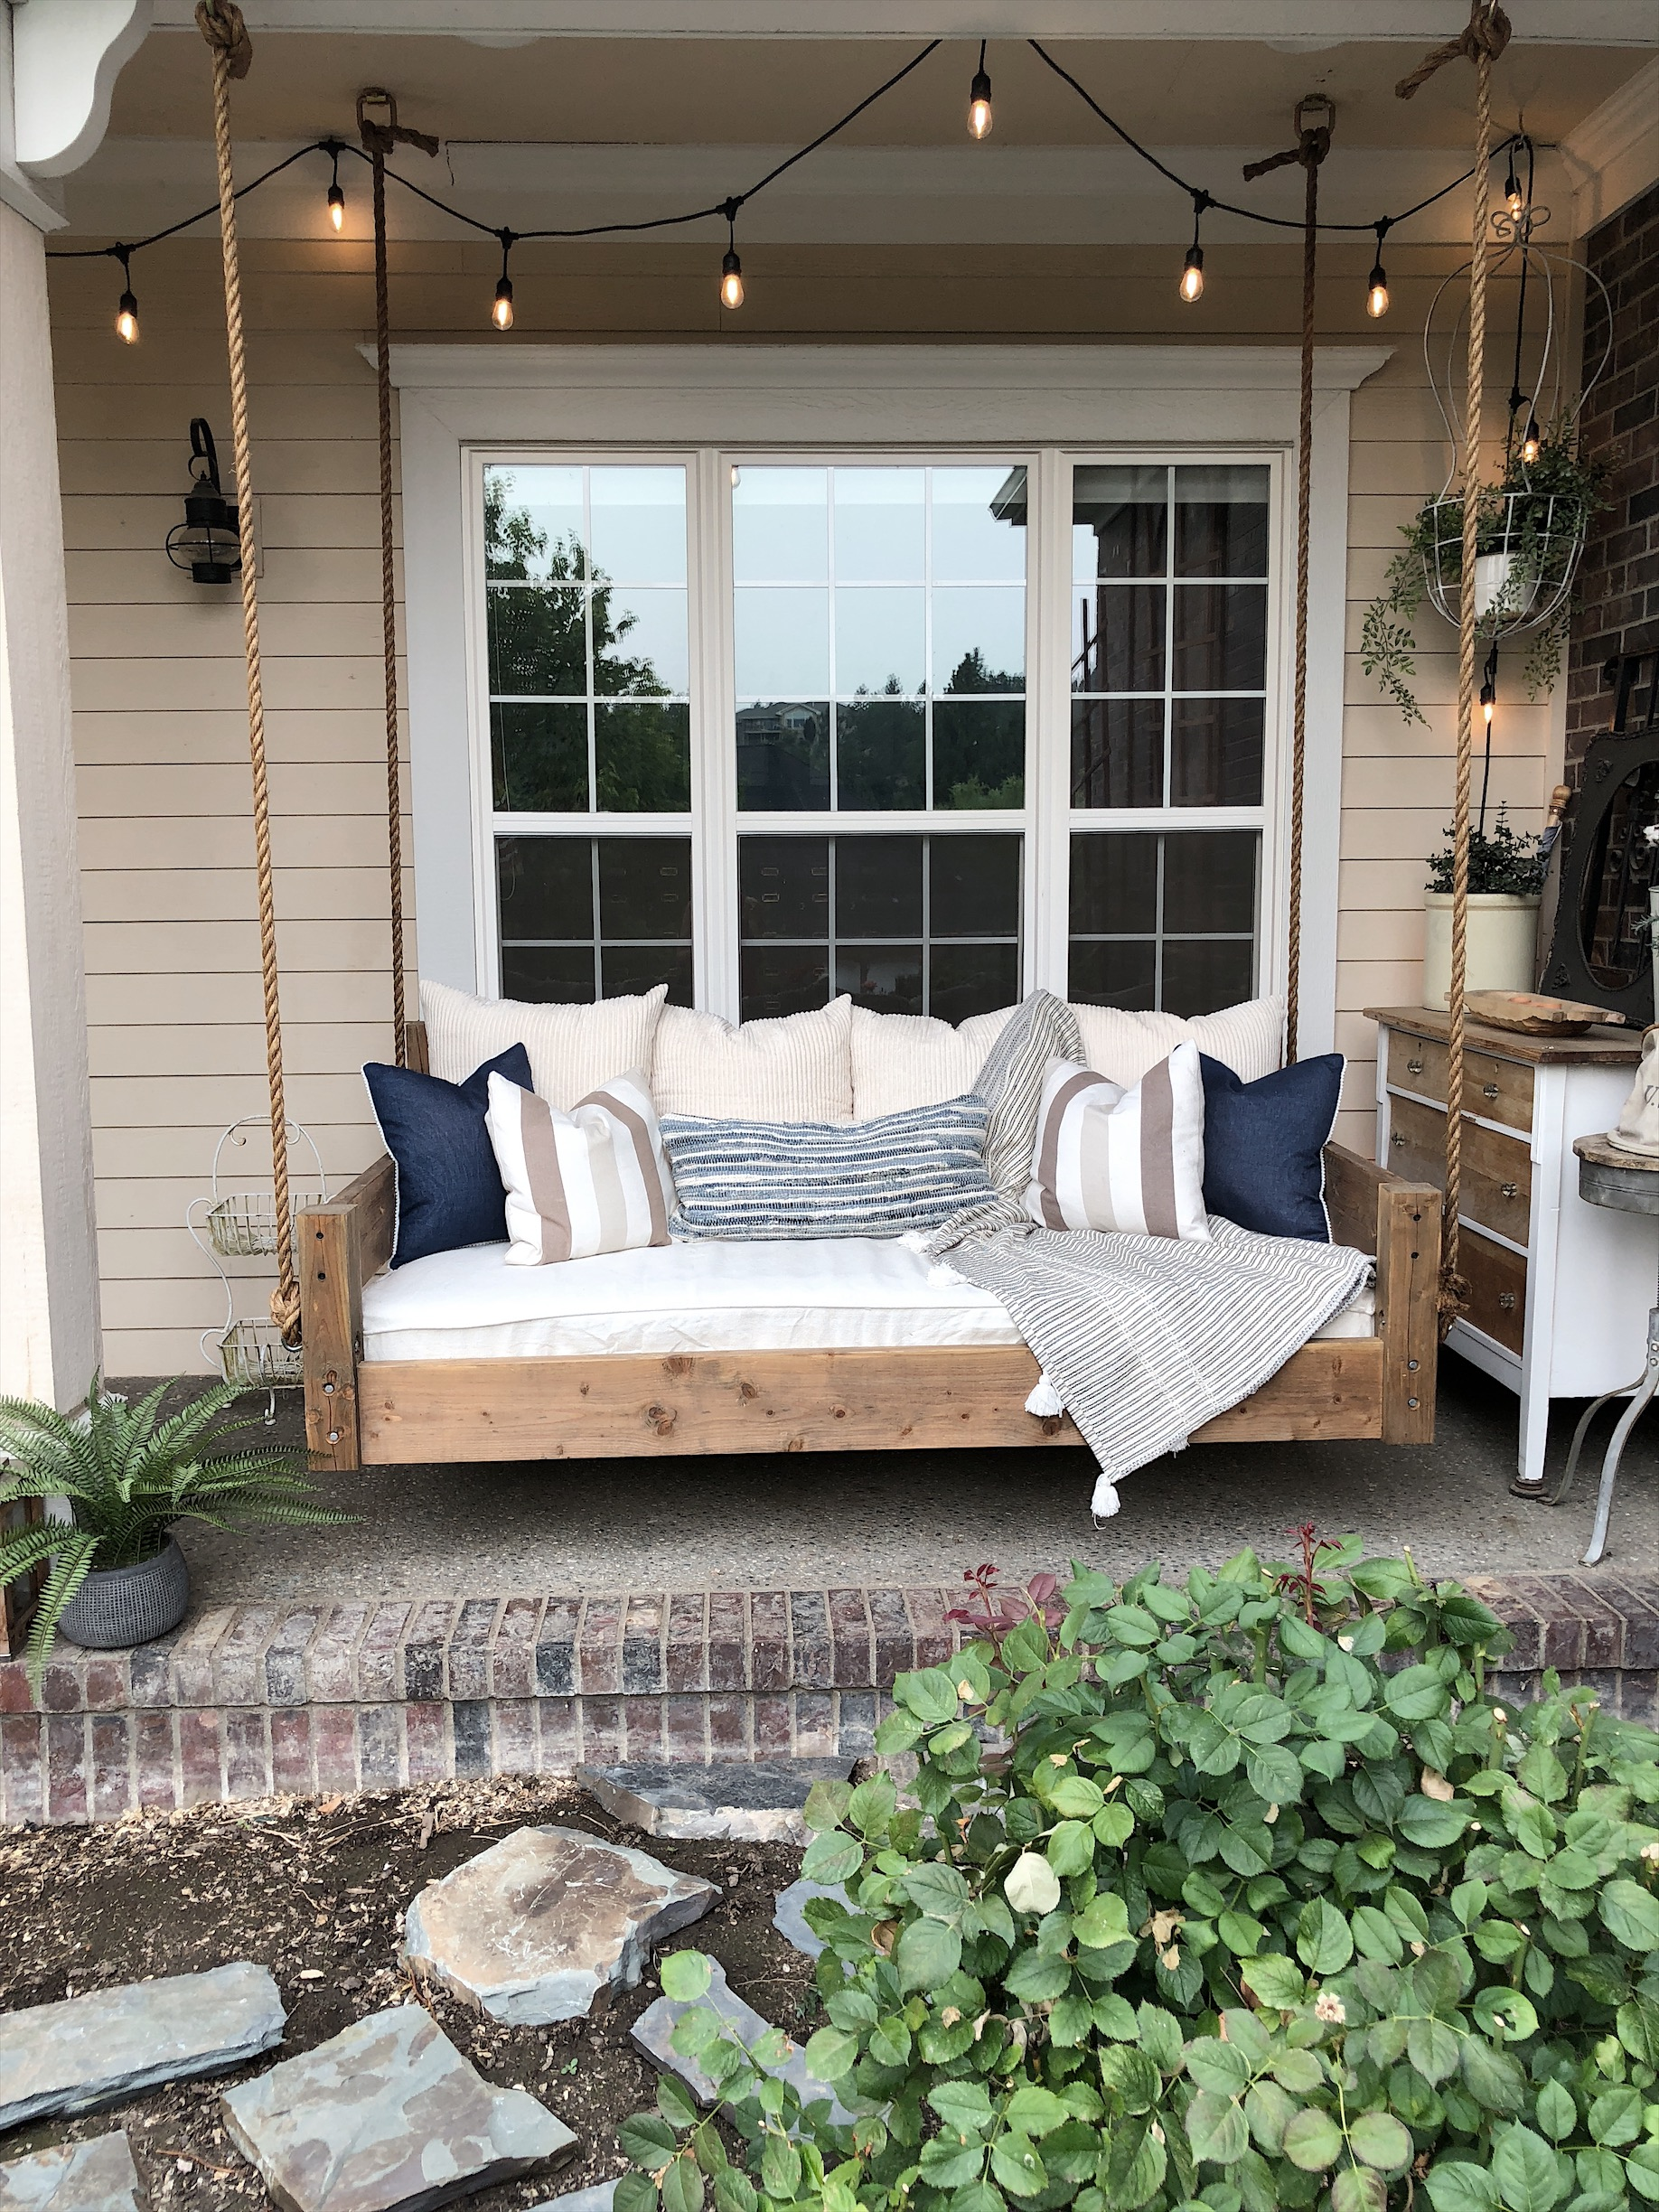 Our Diy Swing Bed Living With Lady